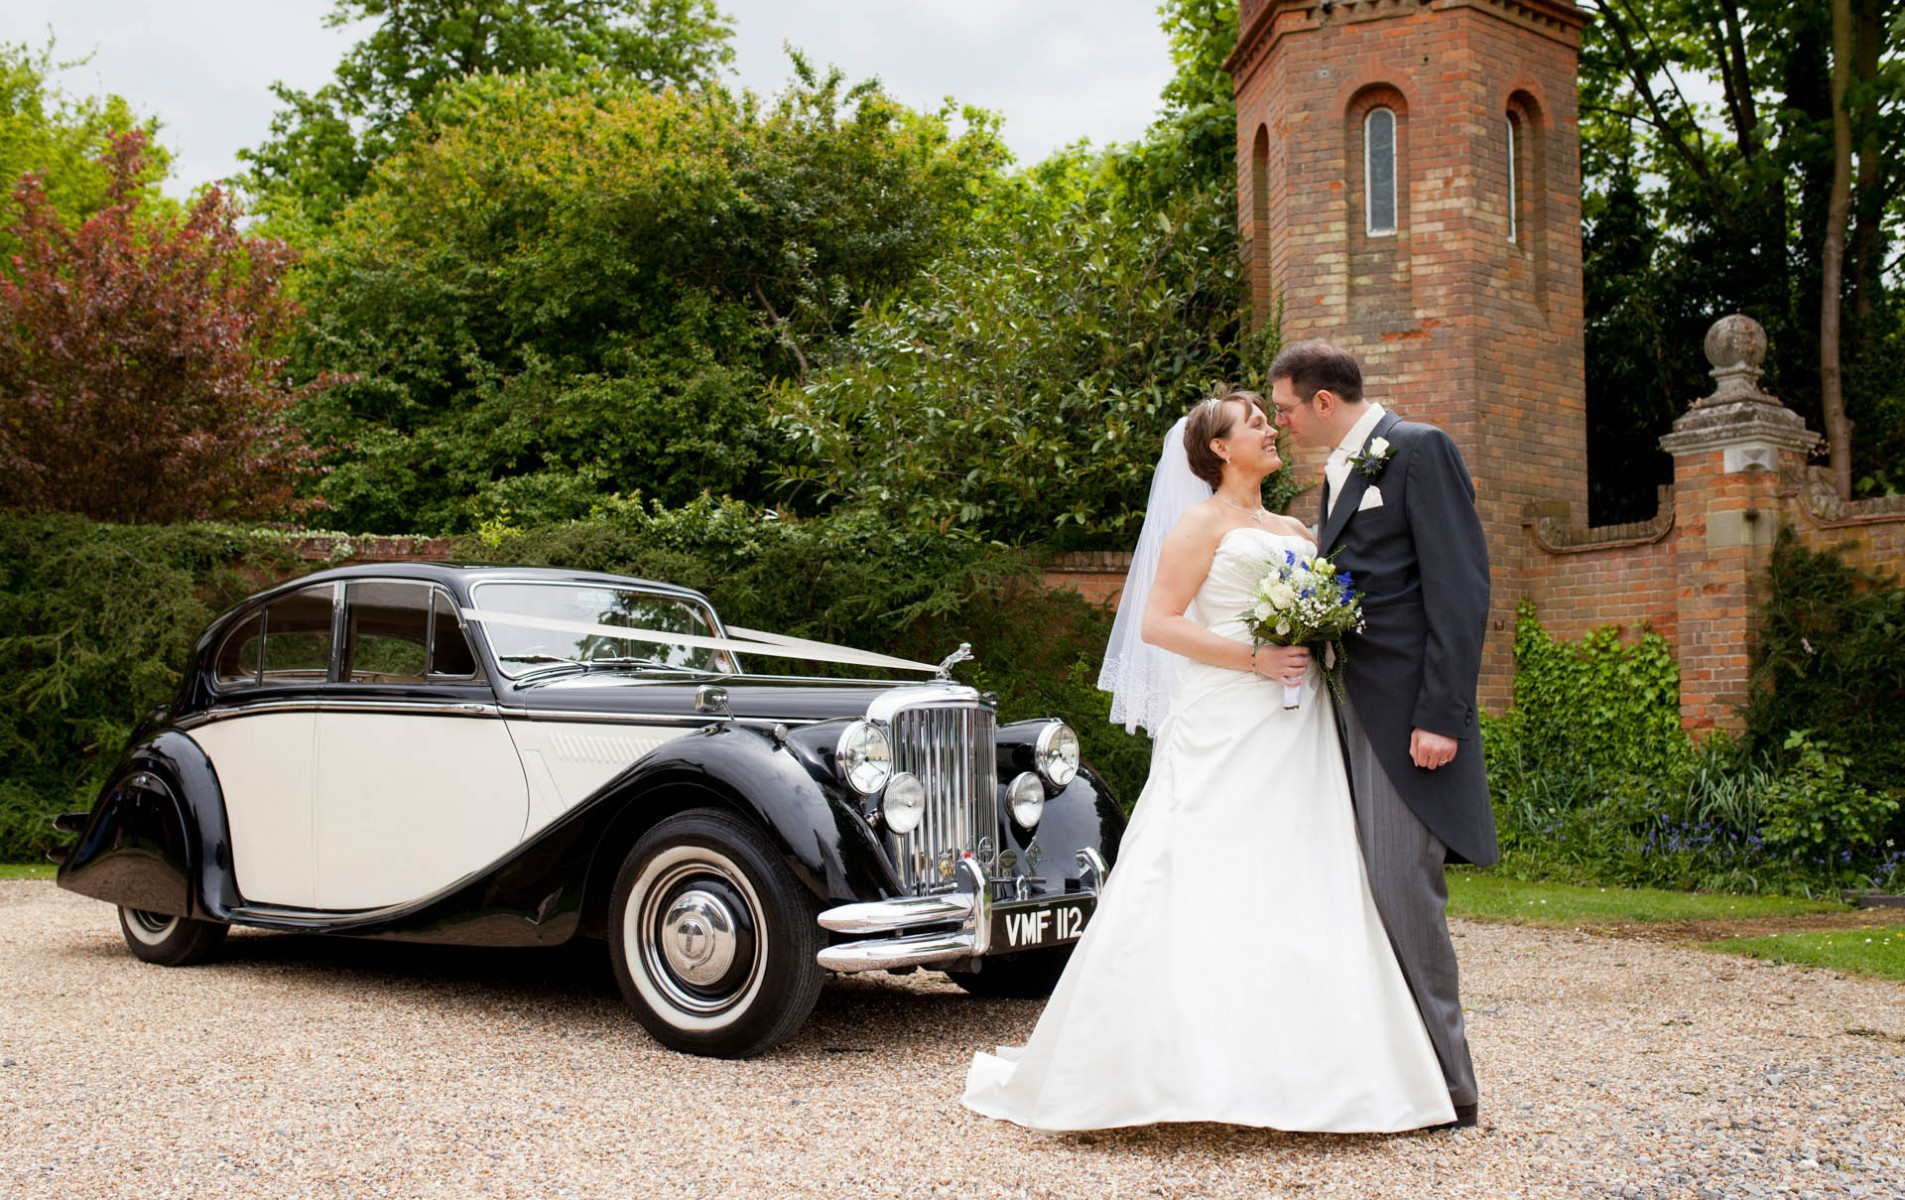 Beaconsfield Wedding Photographer - Sarah and Mark